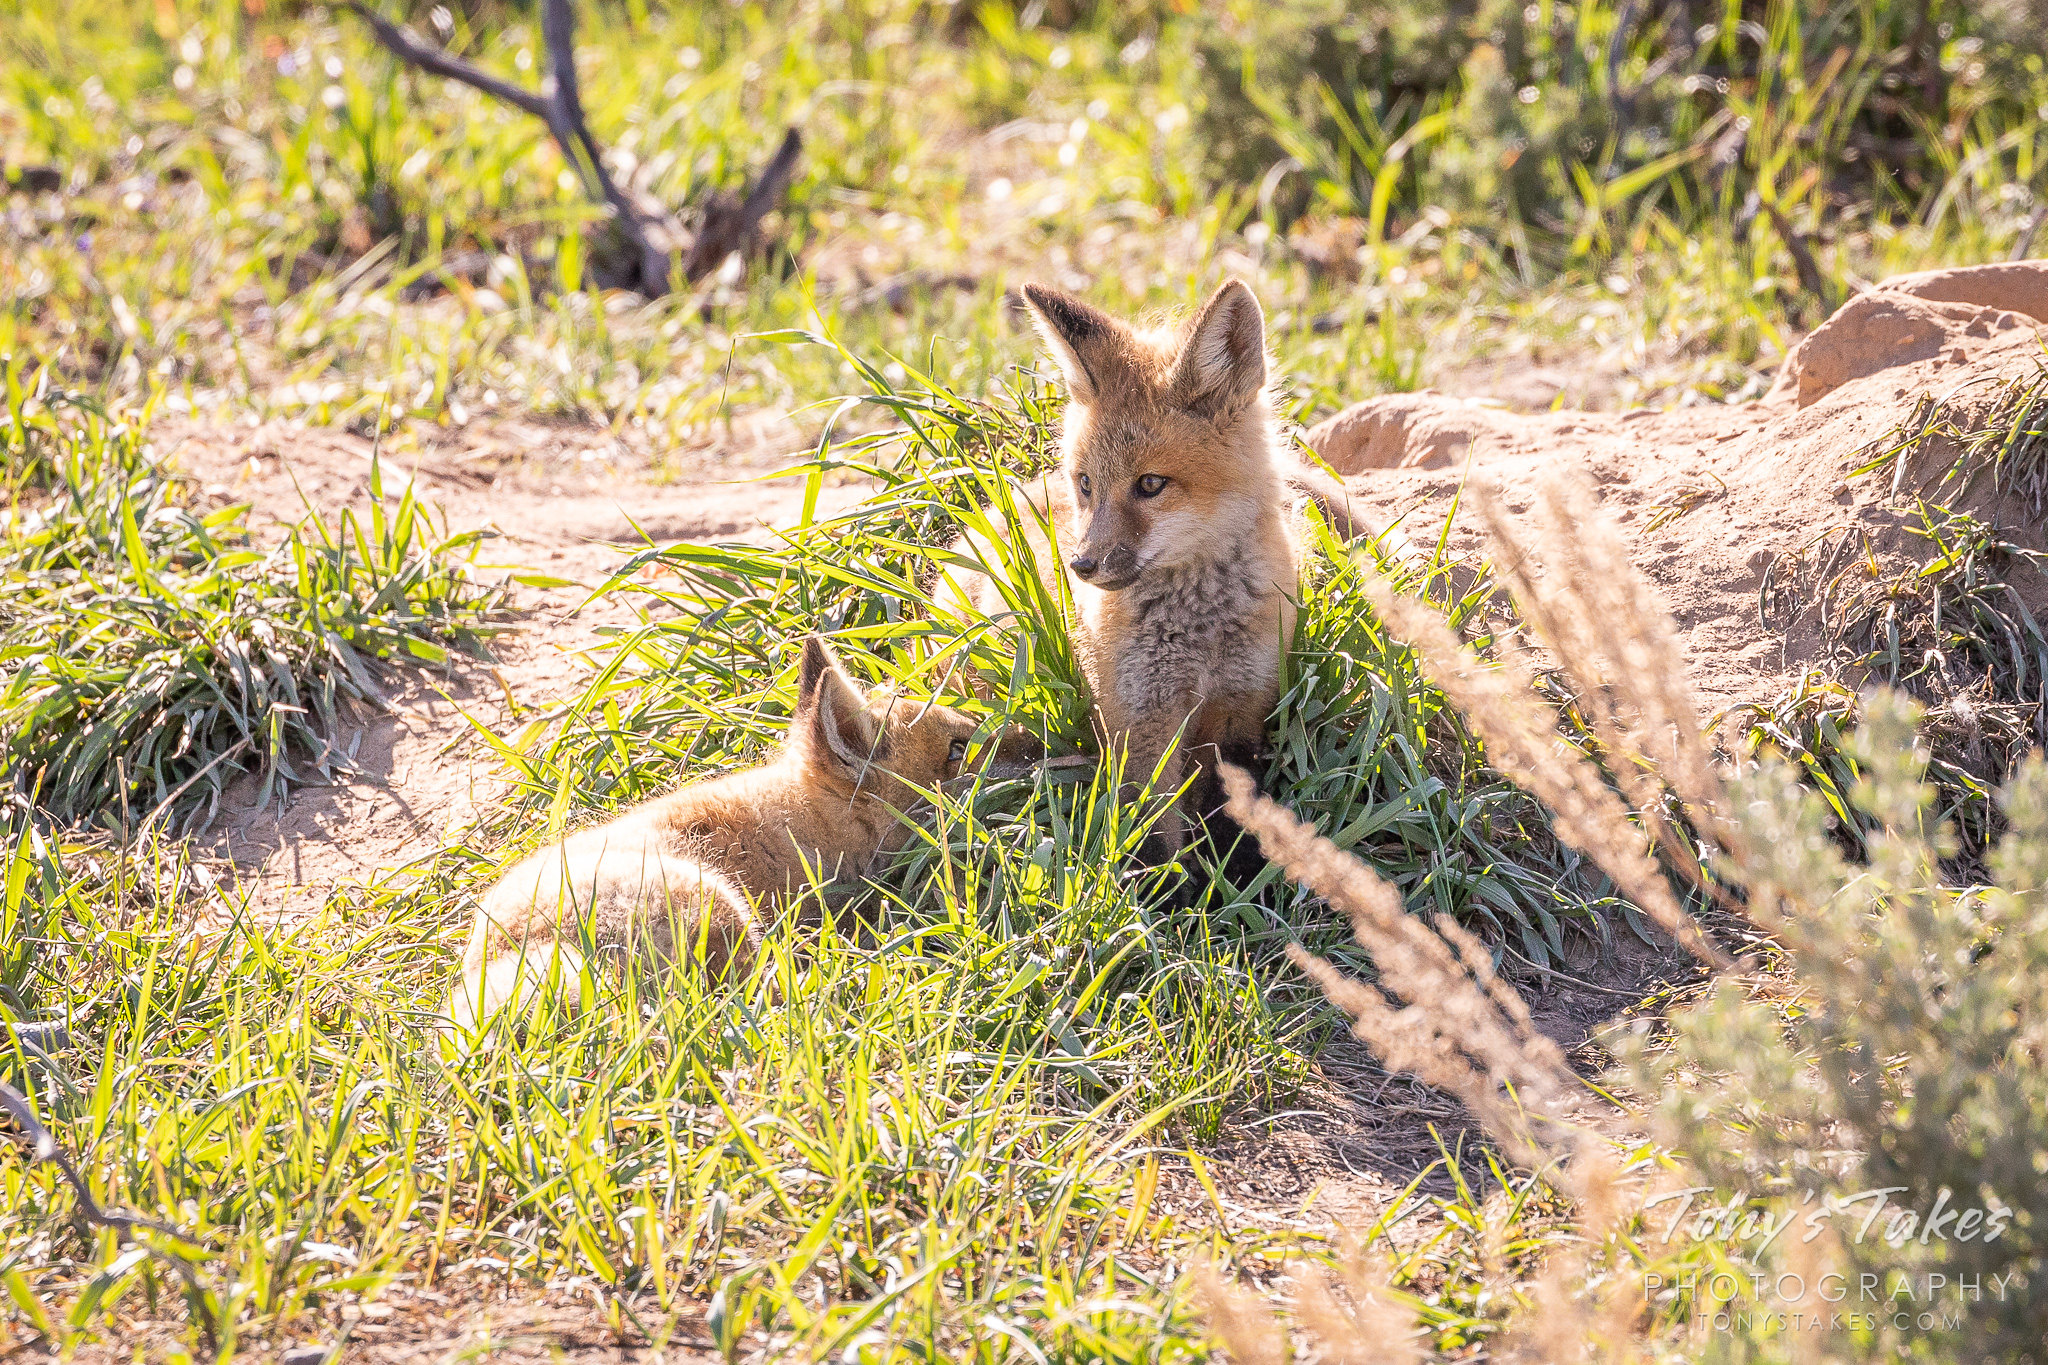 A pair of red fox kits play near their den in Colorado. (© Tony's Takes)